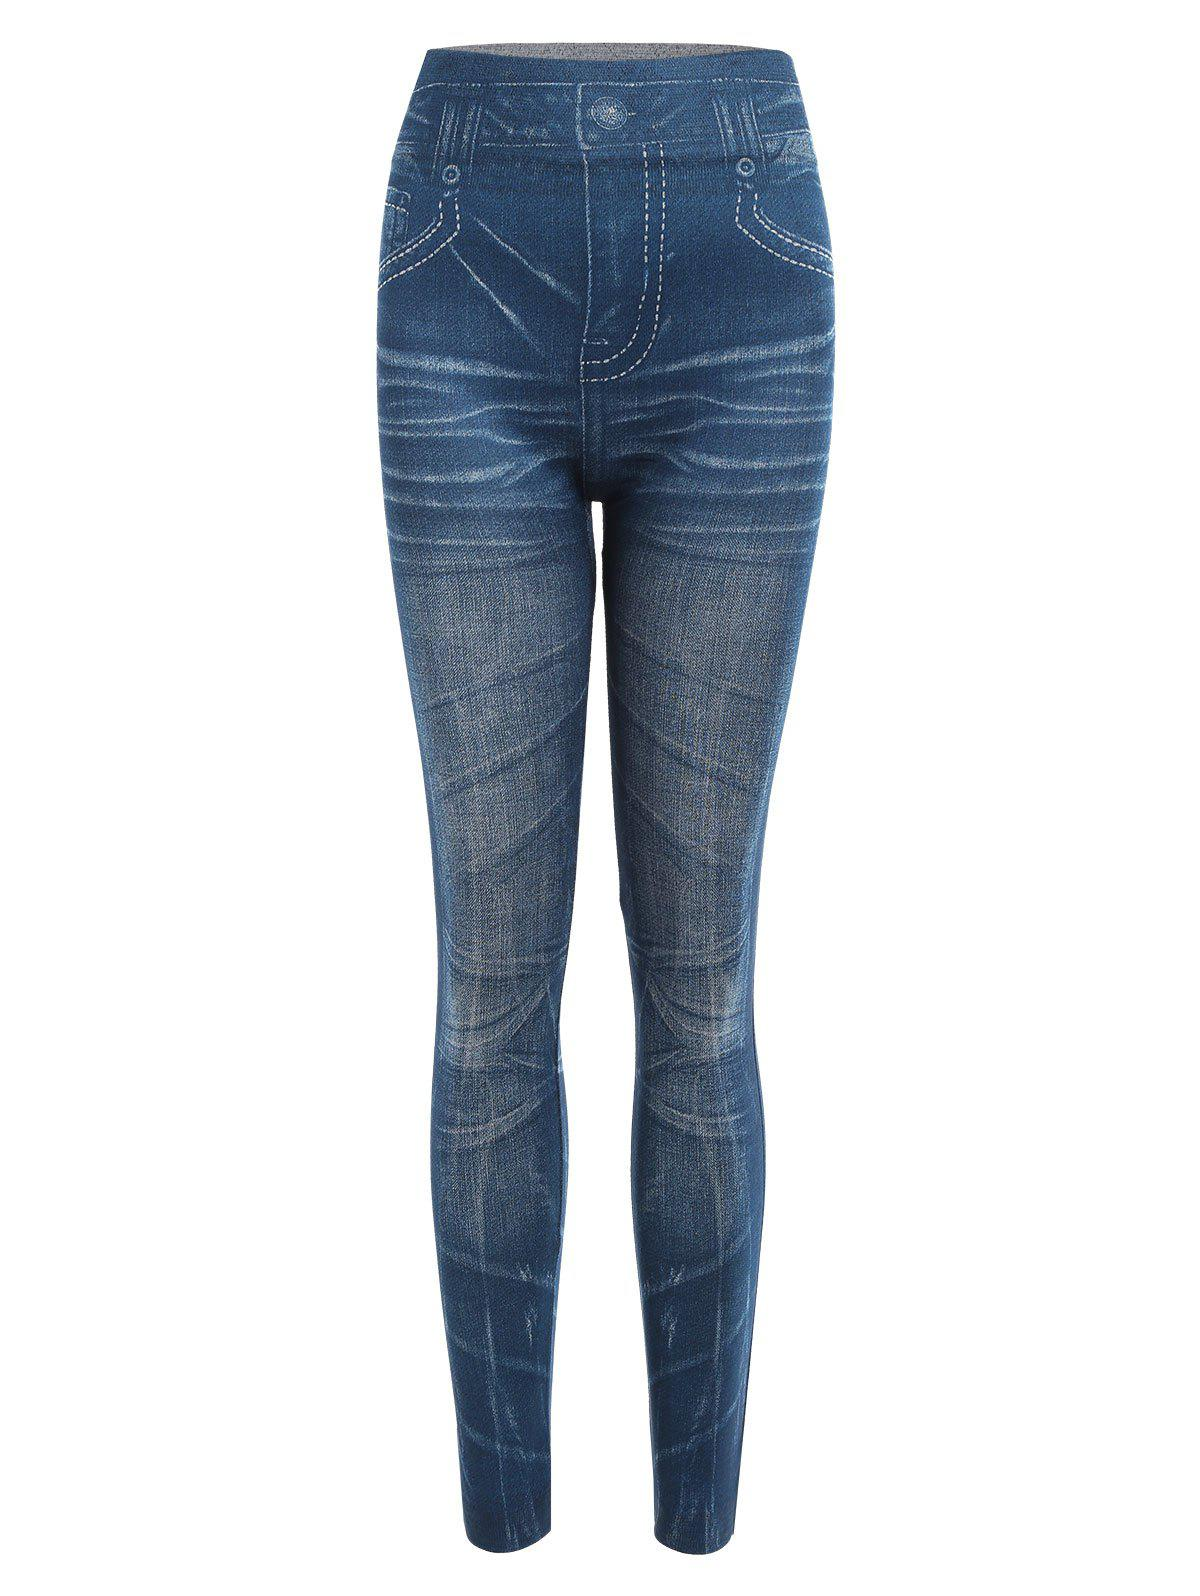 Vintage Mid-Waisted Slimming Tattoo Graffiti Womens Jean LeggingsWOMEN<br><br>Size: ONE SIZE(FIT SIZE XS TO M); Color: BLUE; Style: Vintage; Material: Polyester; Waist Type: Mid; Weight: 0.1900kg; Package Contents: 1 x Leggings;